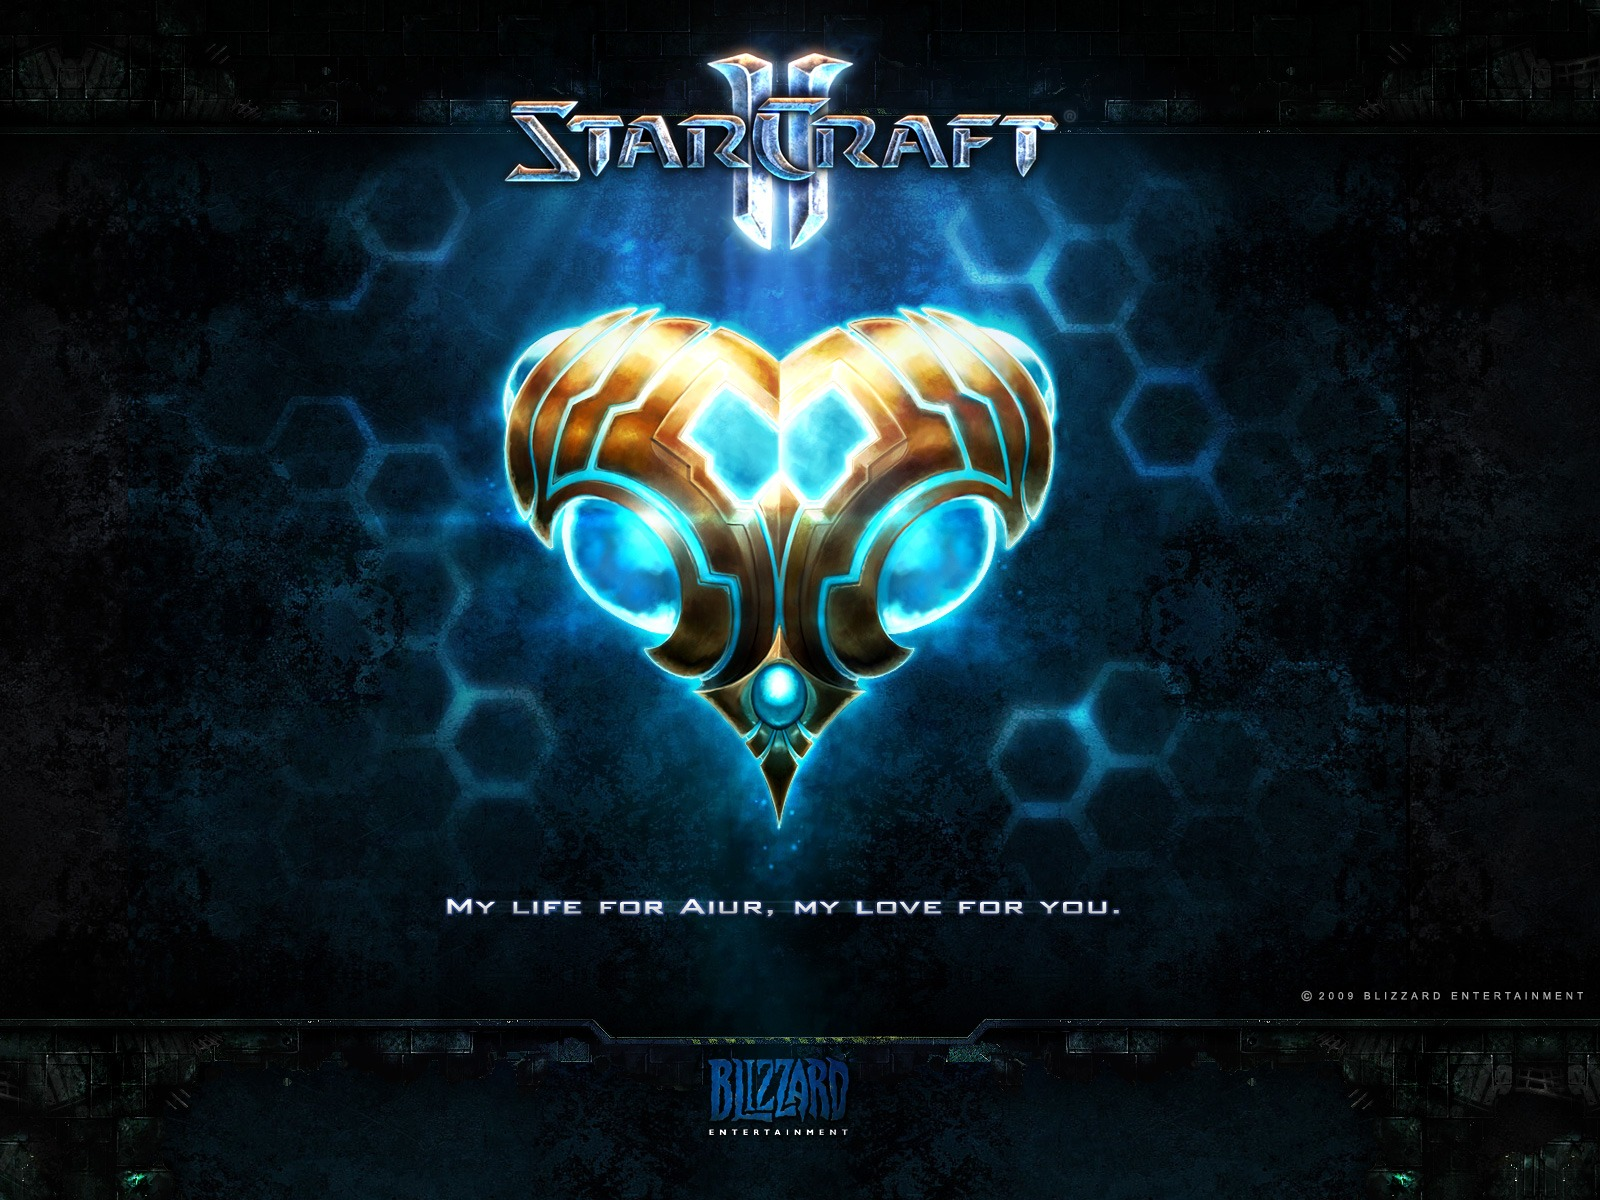 Blizzard Starcraft 2 Wallpaper Games Wallpapers